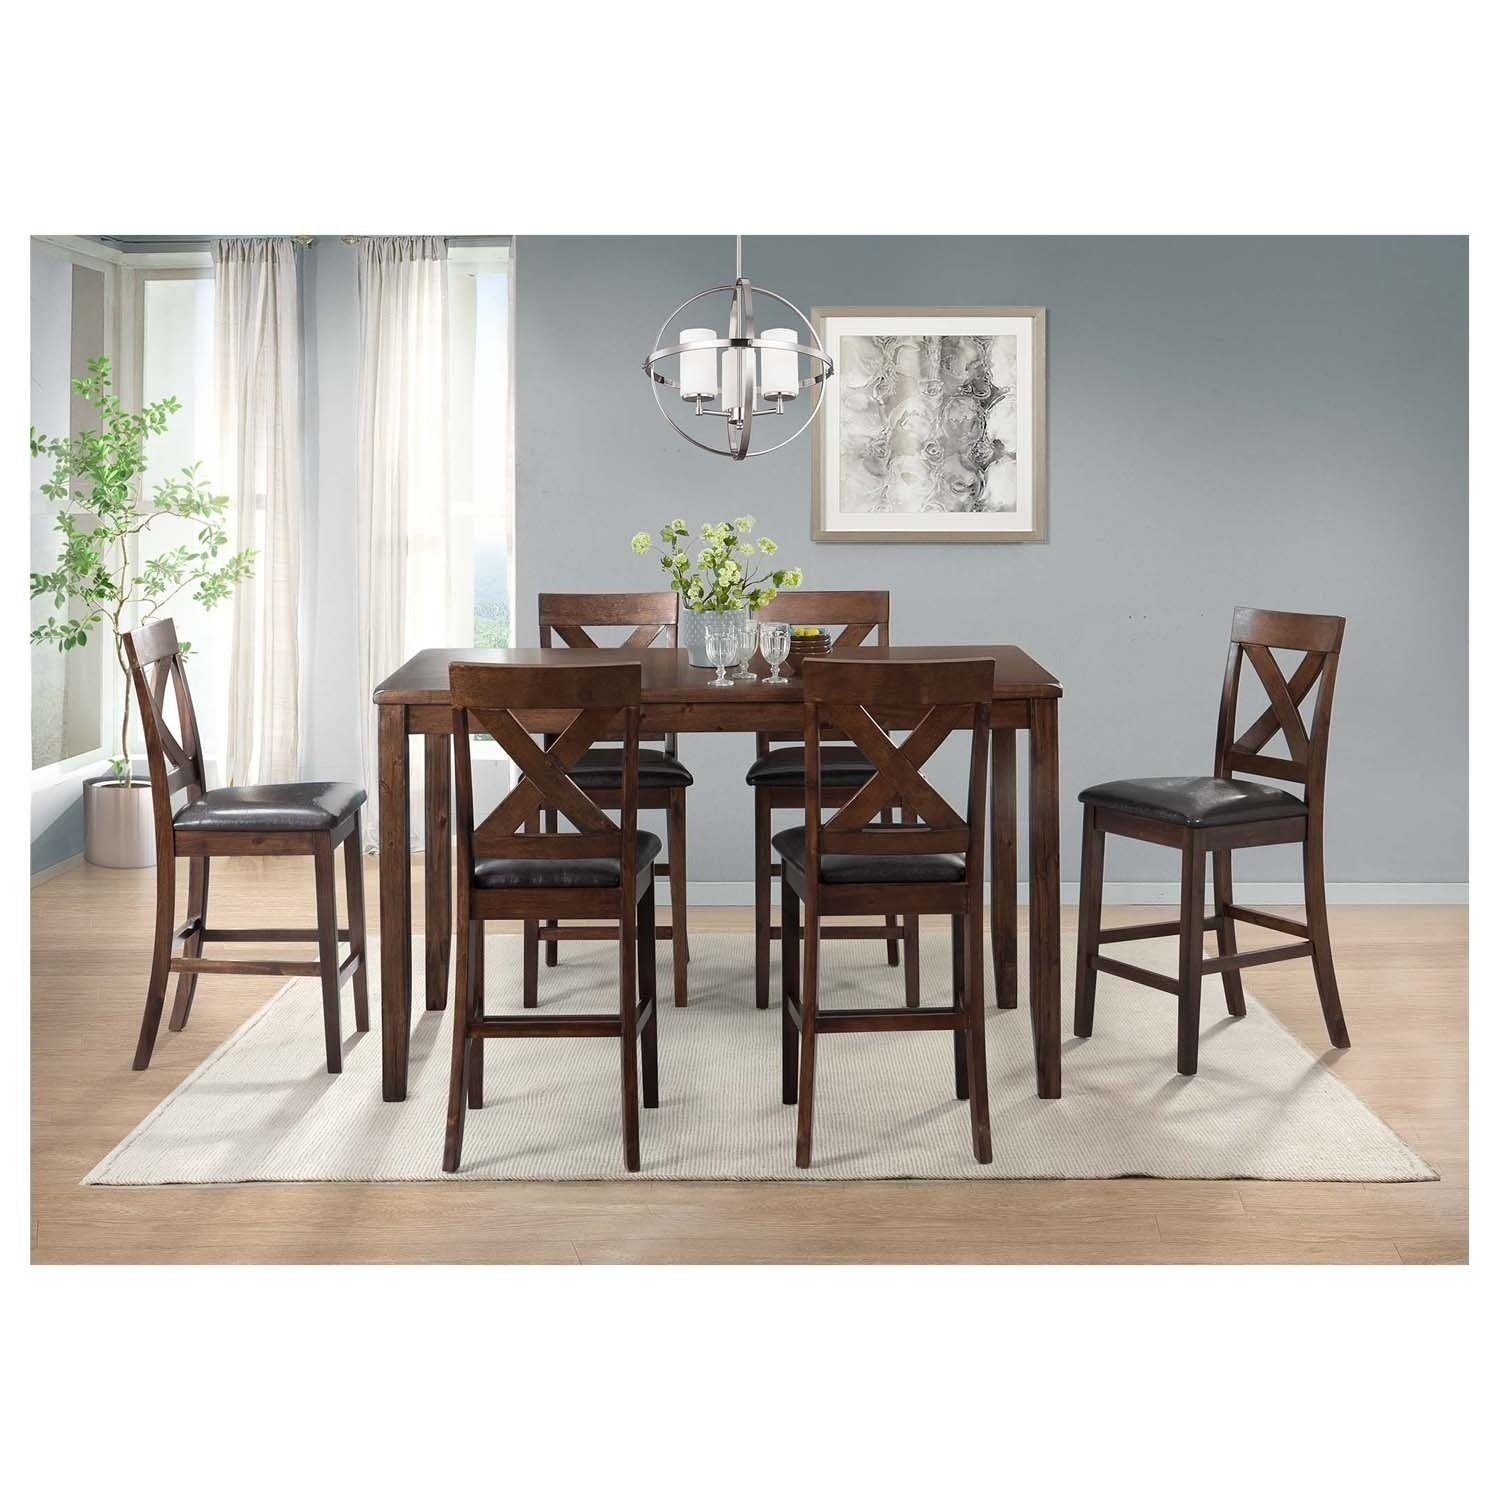 Alexa White Side Chairs With Well Liked Shop Picket House Furnishings Alexa 7pc Dining Set – Ships To Canada (View 15 of 20)